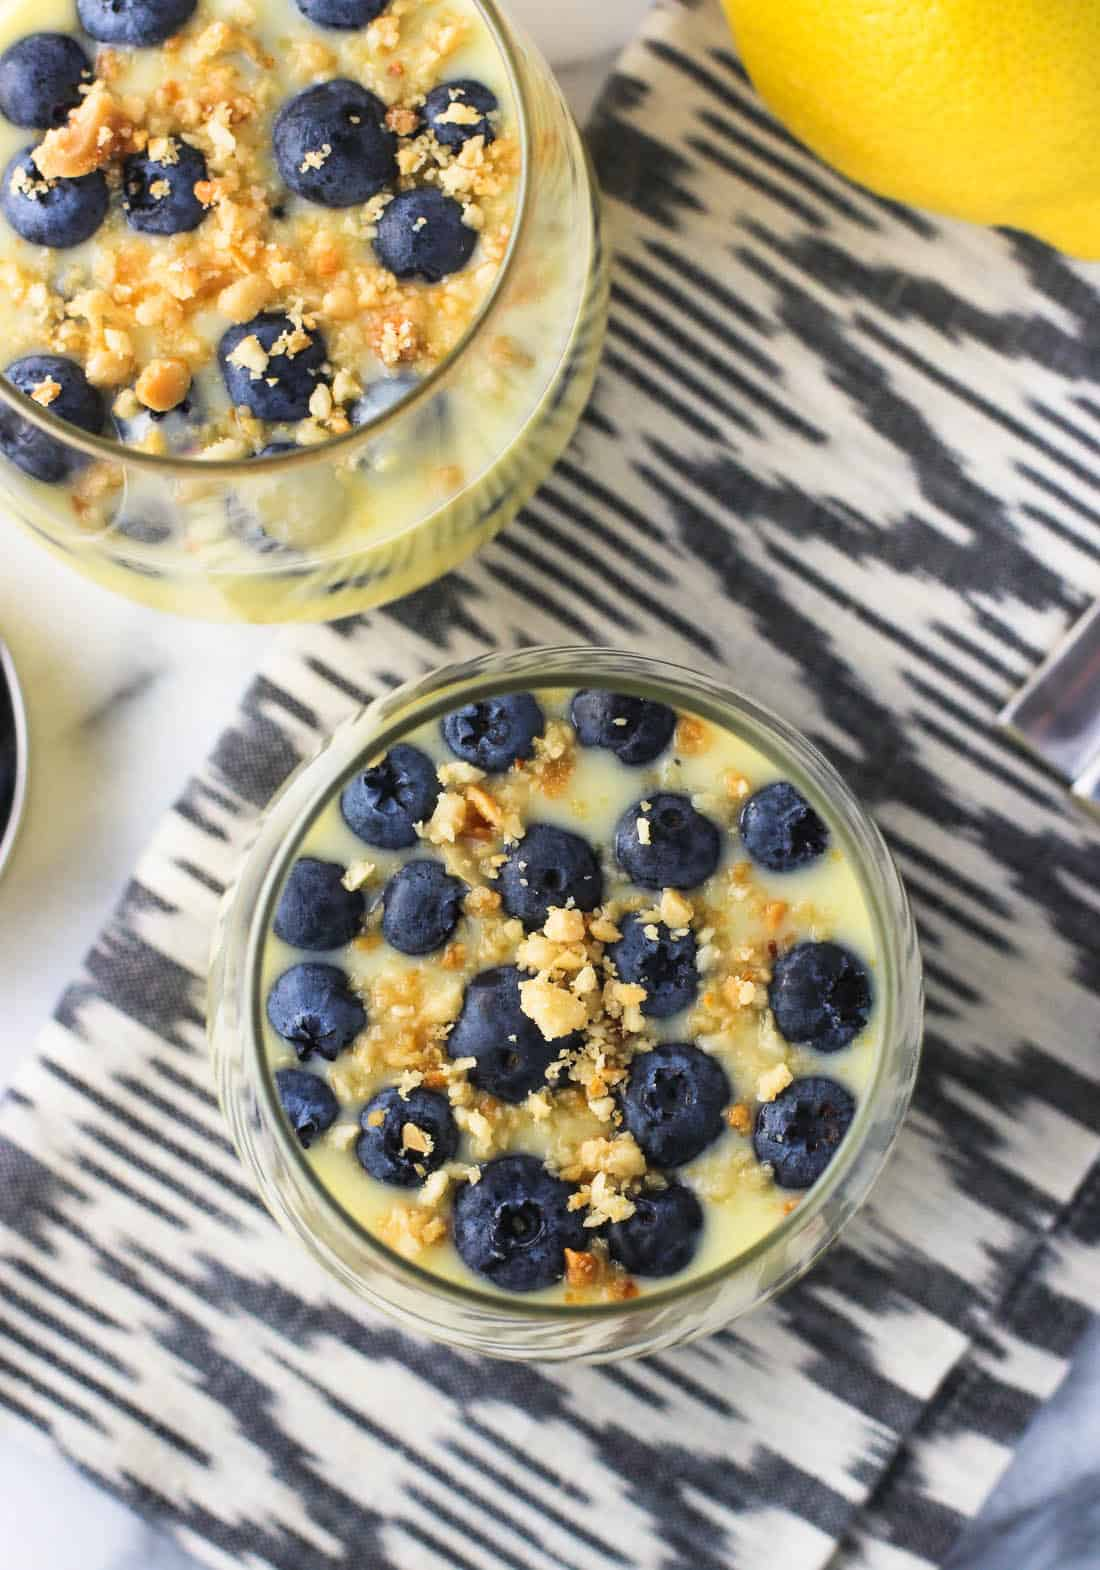 An overhead shot of two glasses filled with lemon pudding, topped with blueberries and nut crumble